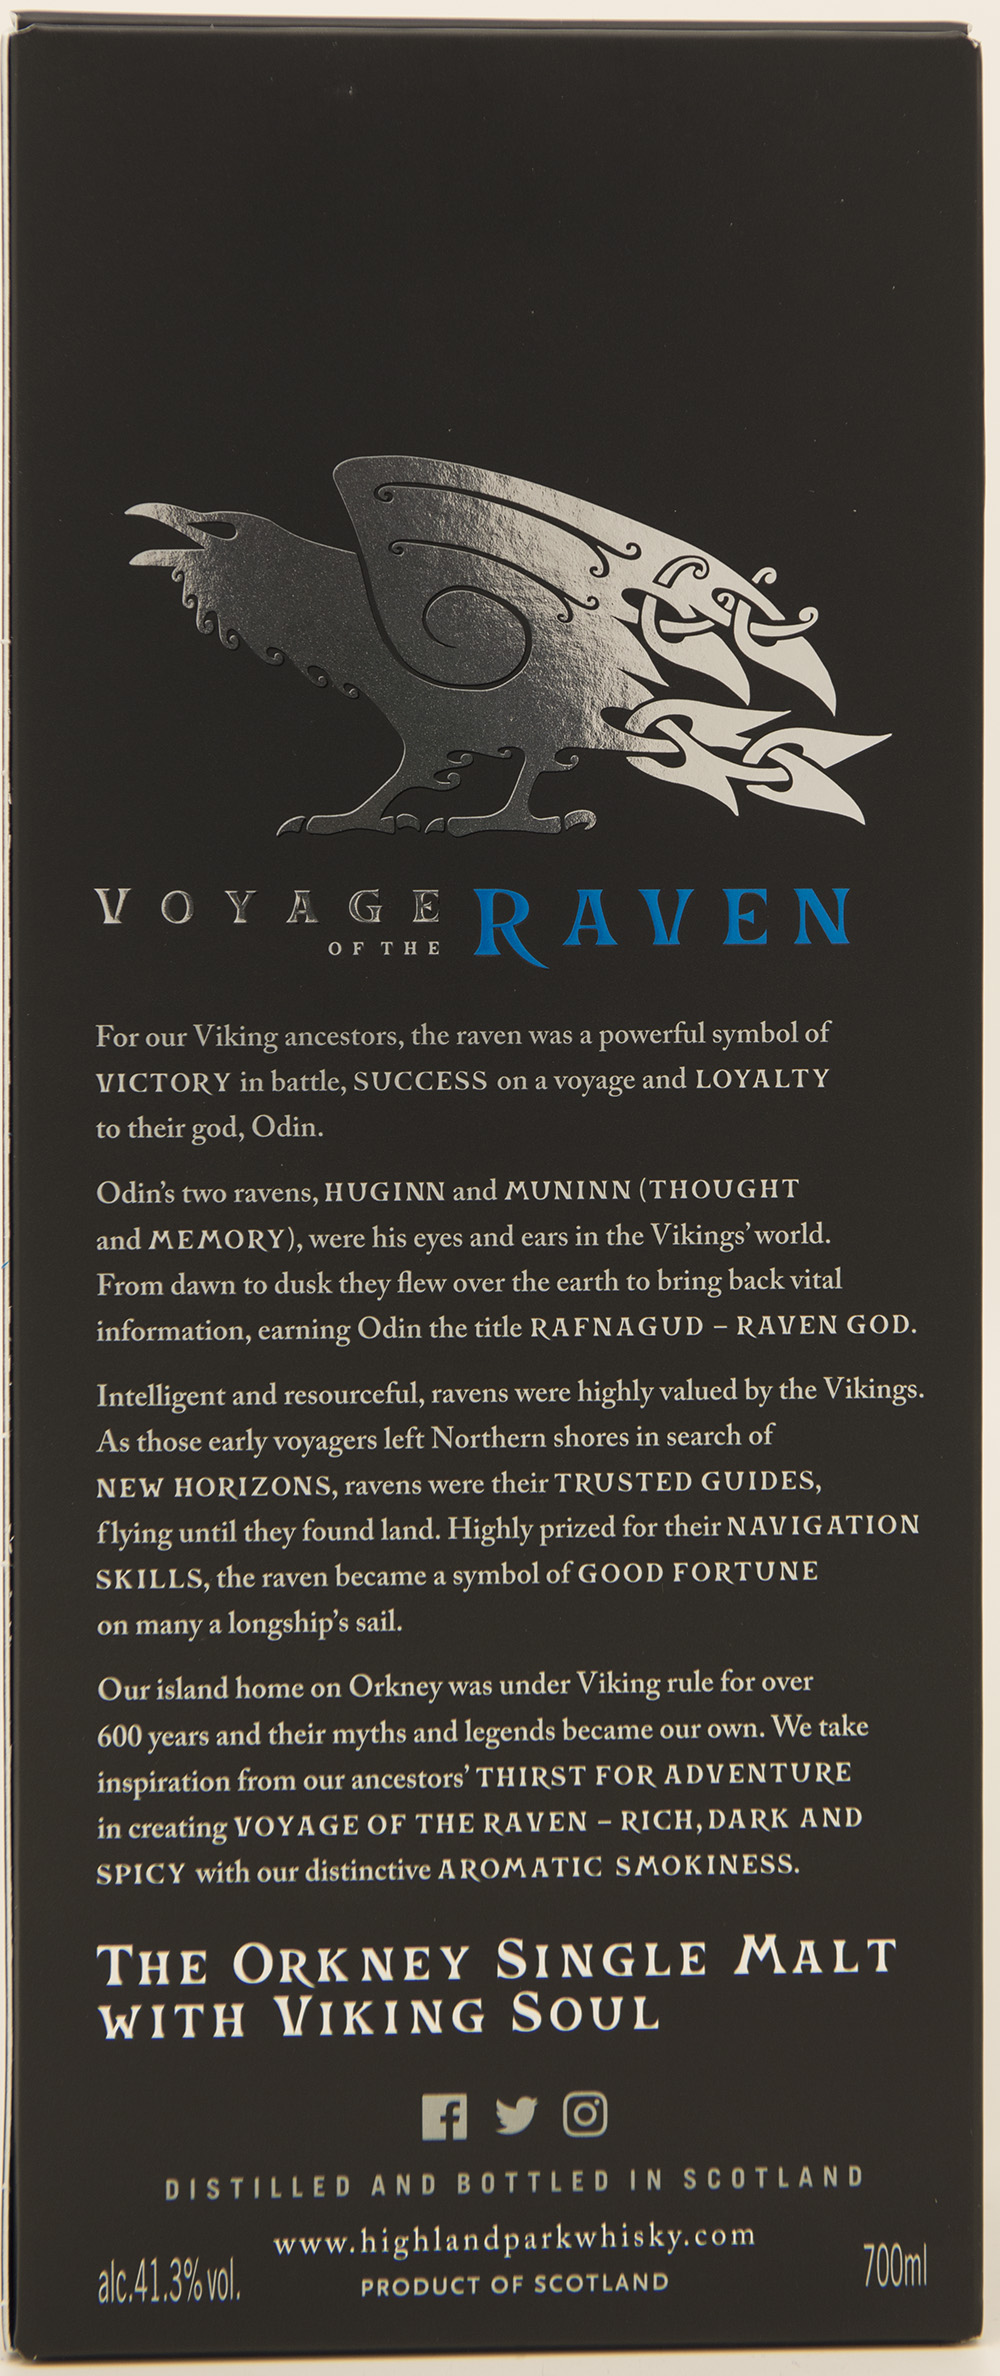 Billede: DSC_3708 - Highland Park - Voyage of the Raven (box back).jpg